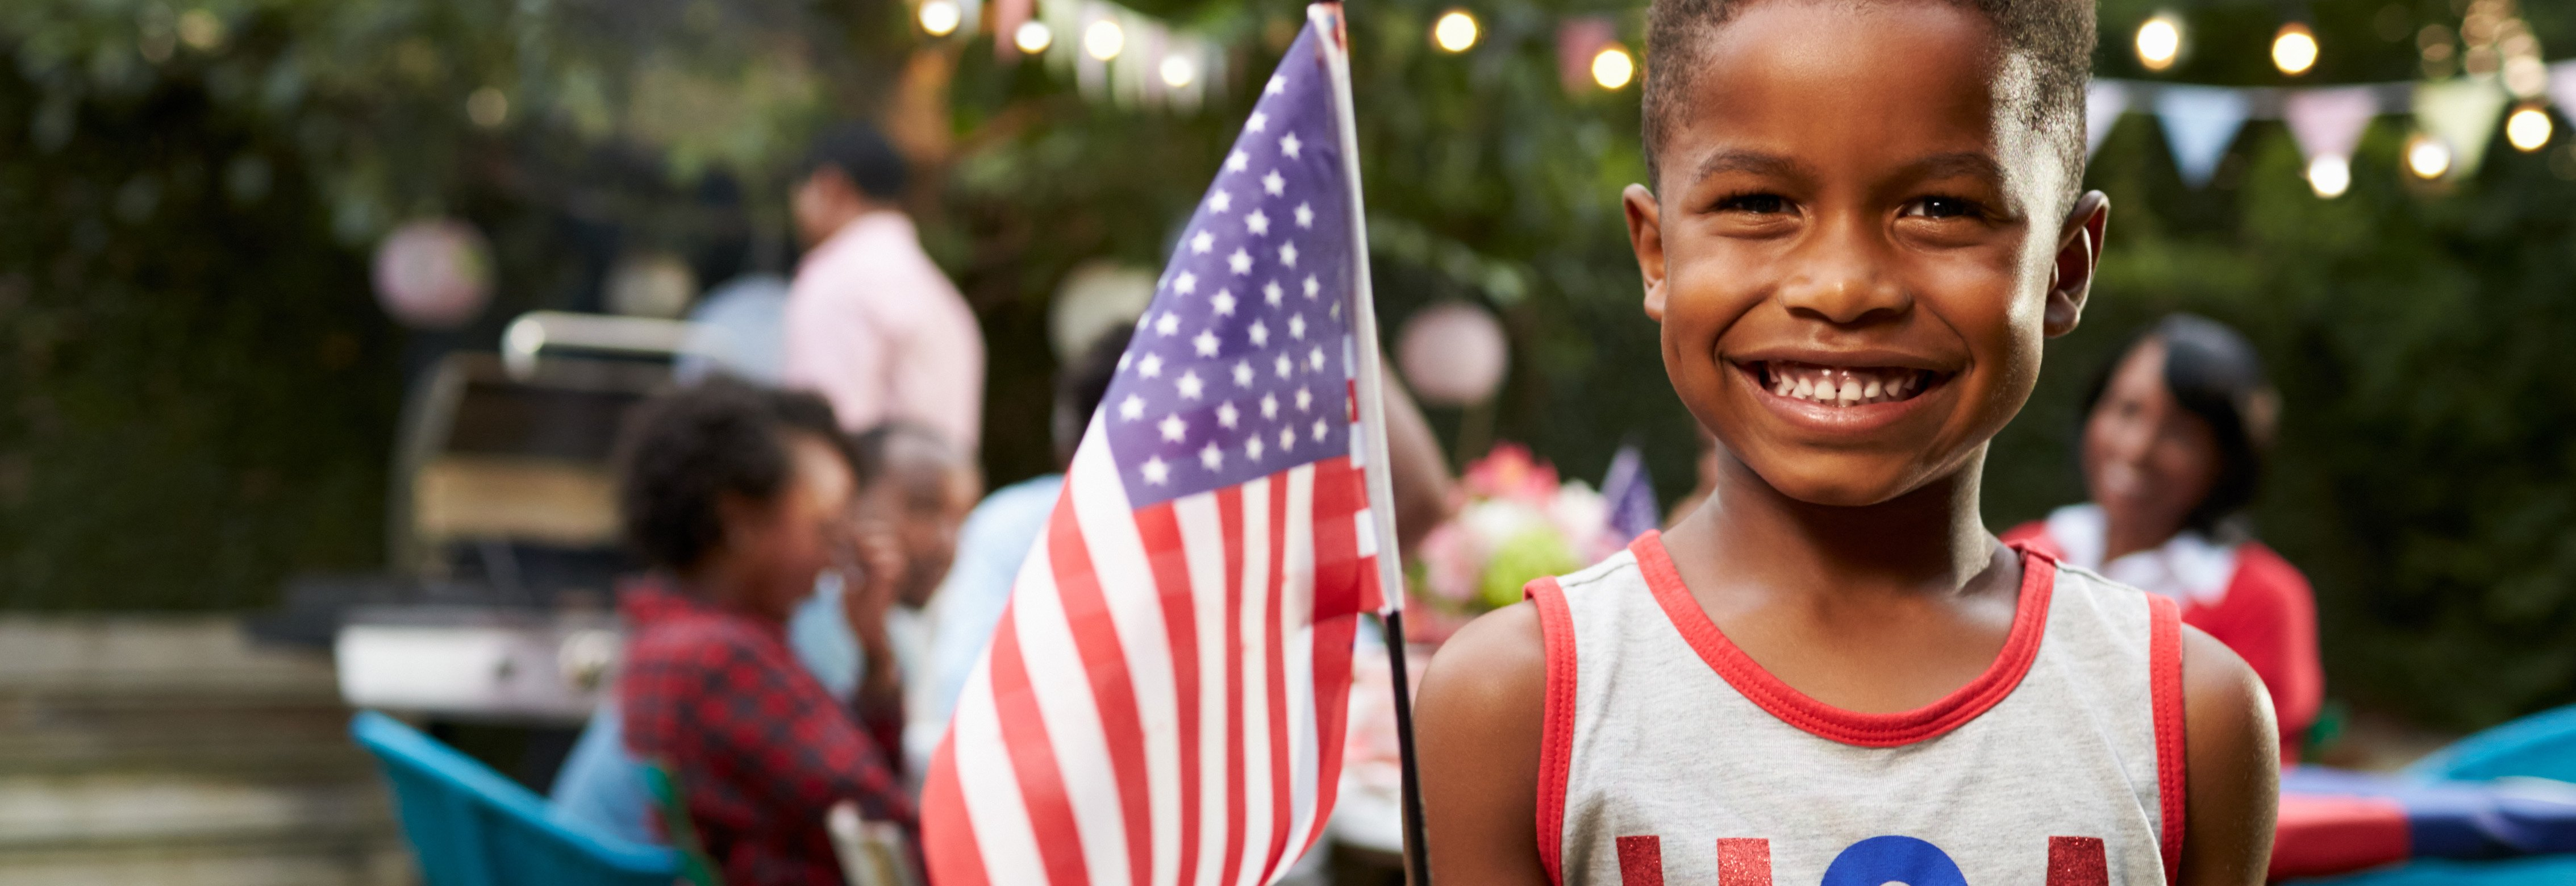 Fireworks & Things To Do 4th of July Weekend with Your Family